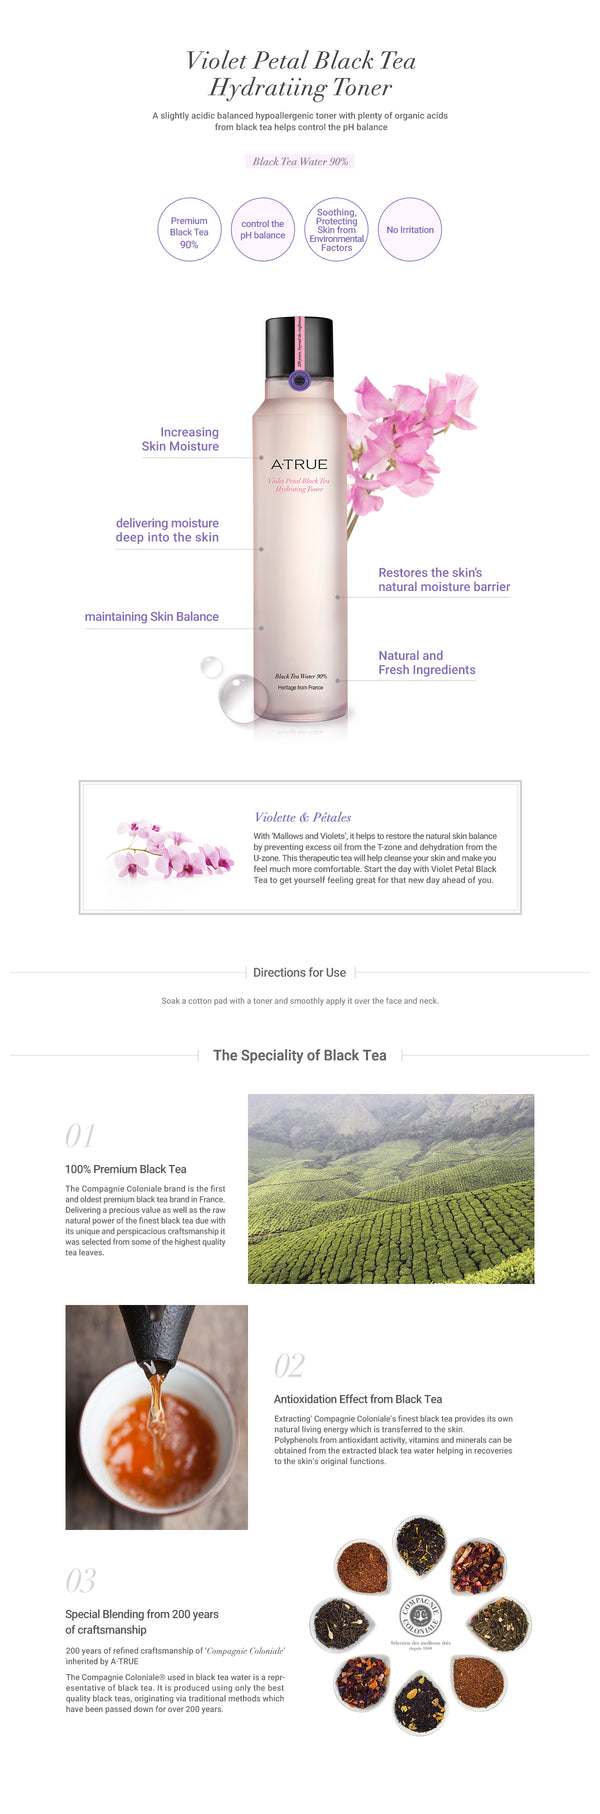 A. True Violet Petal Black Tea Hydrating Toner